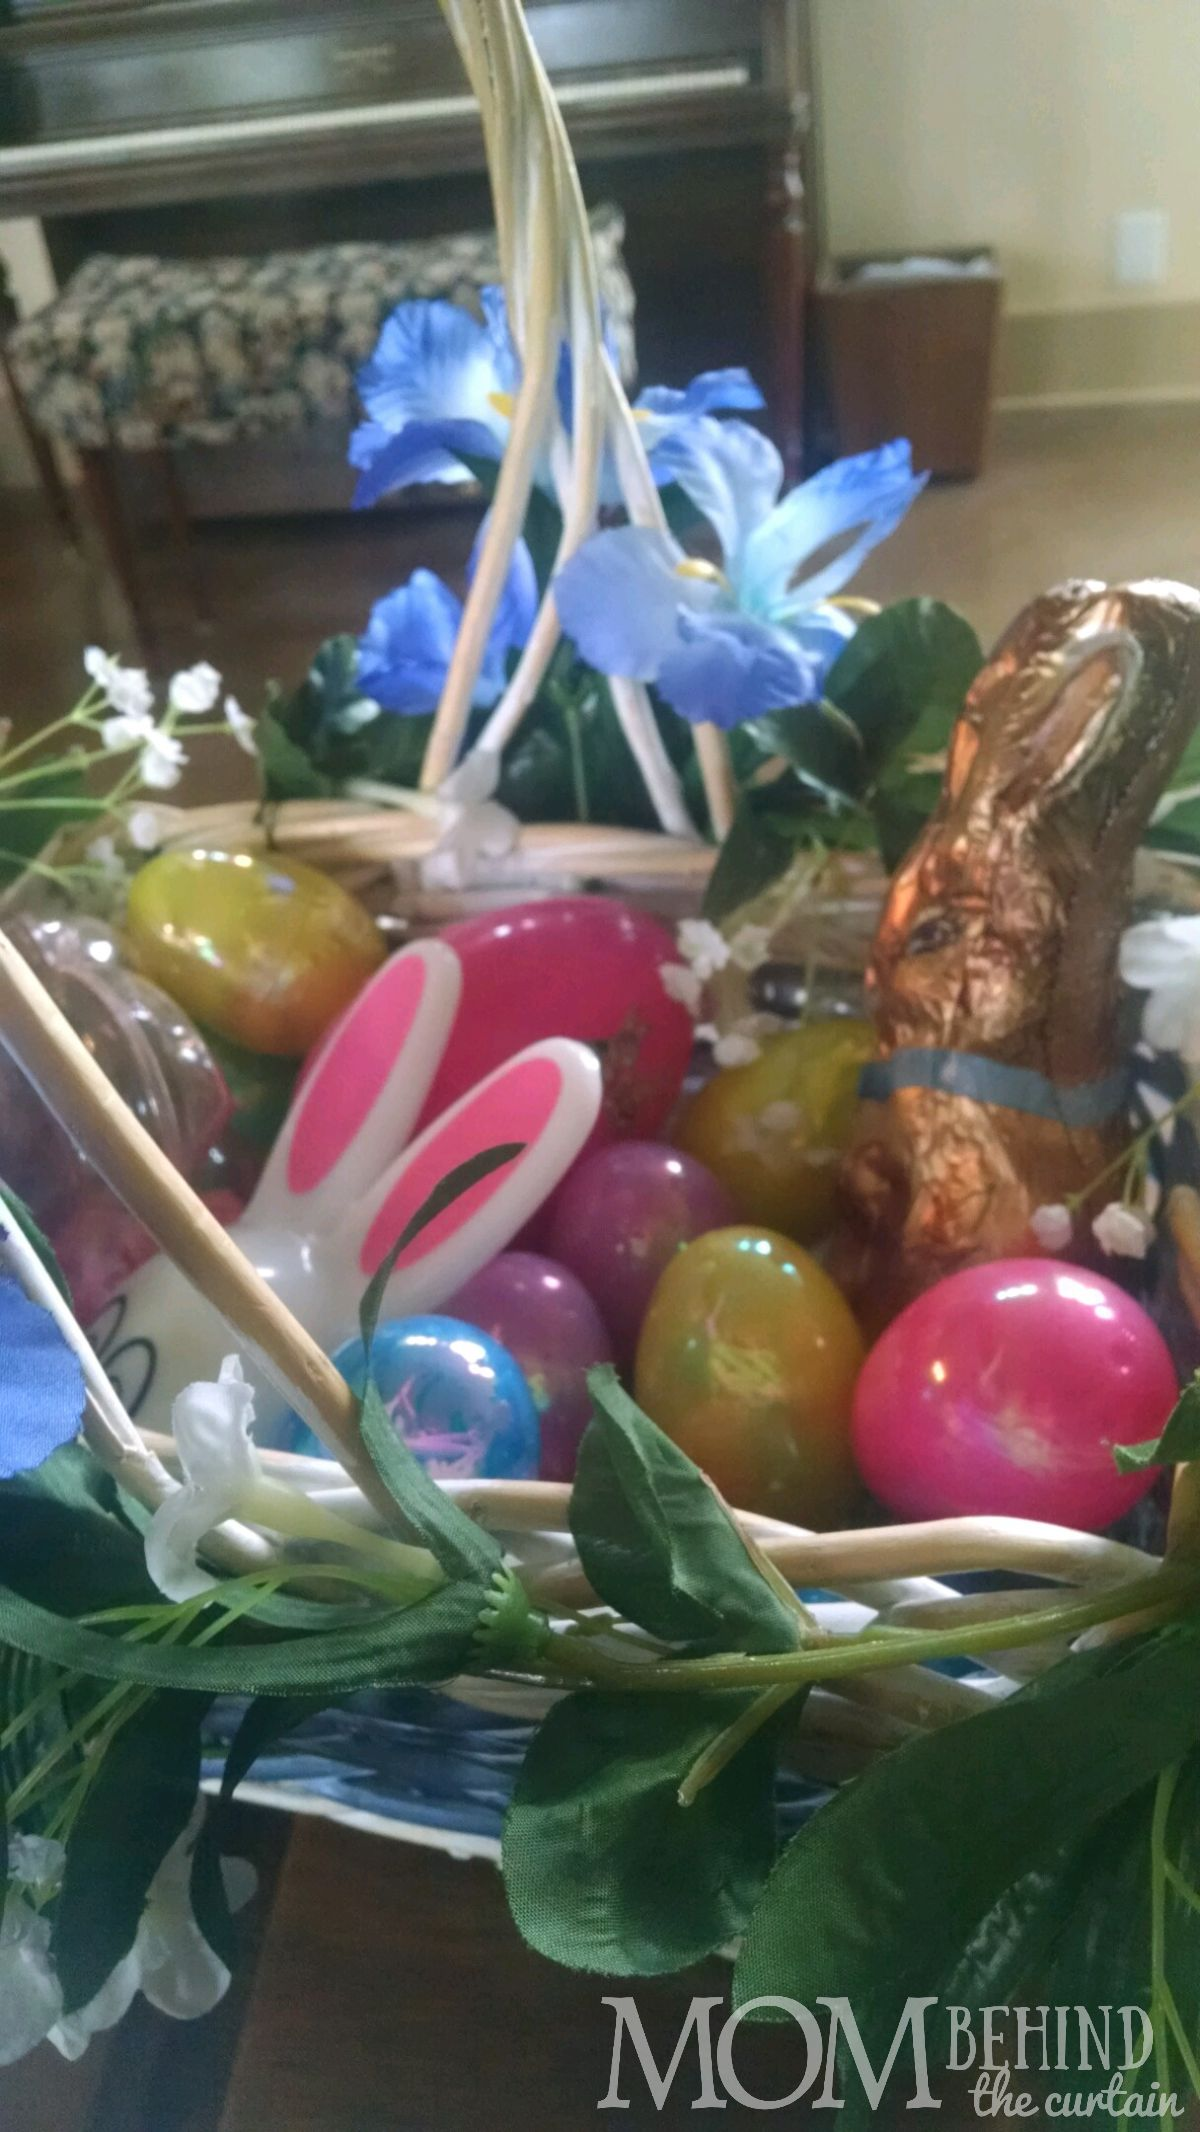 Text & Instagram scavenger hunt photo, Easter game ideas for teens and tweens - Easter basket